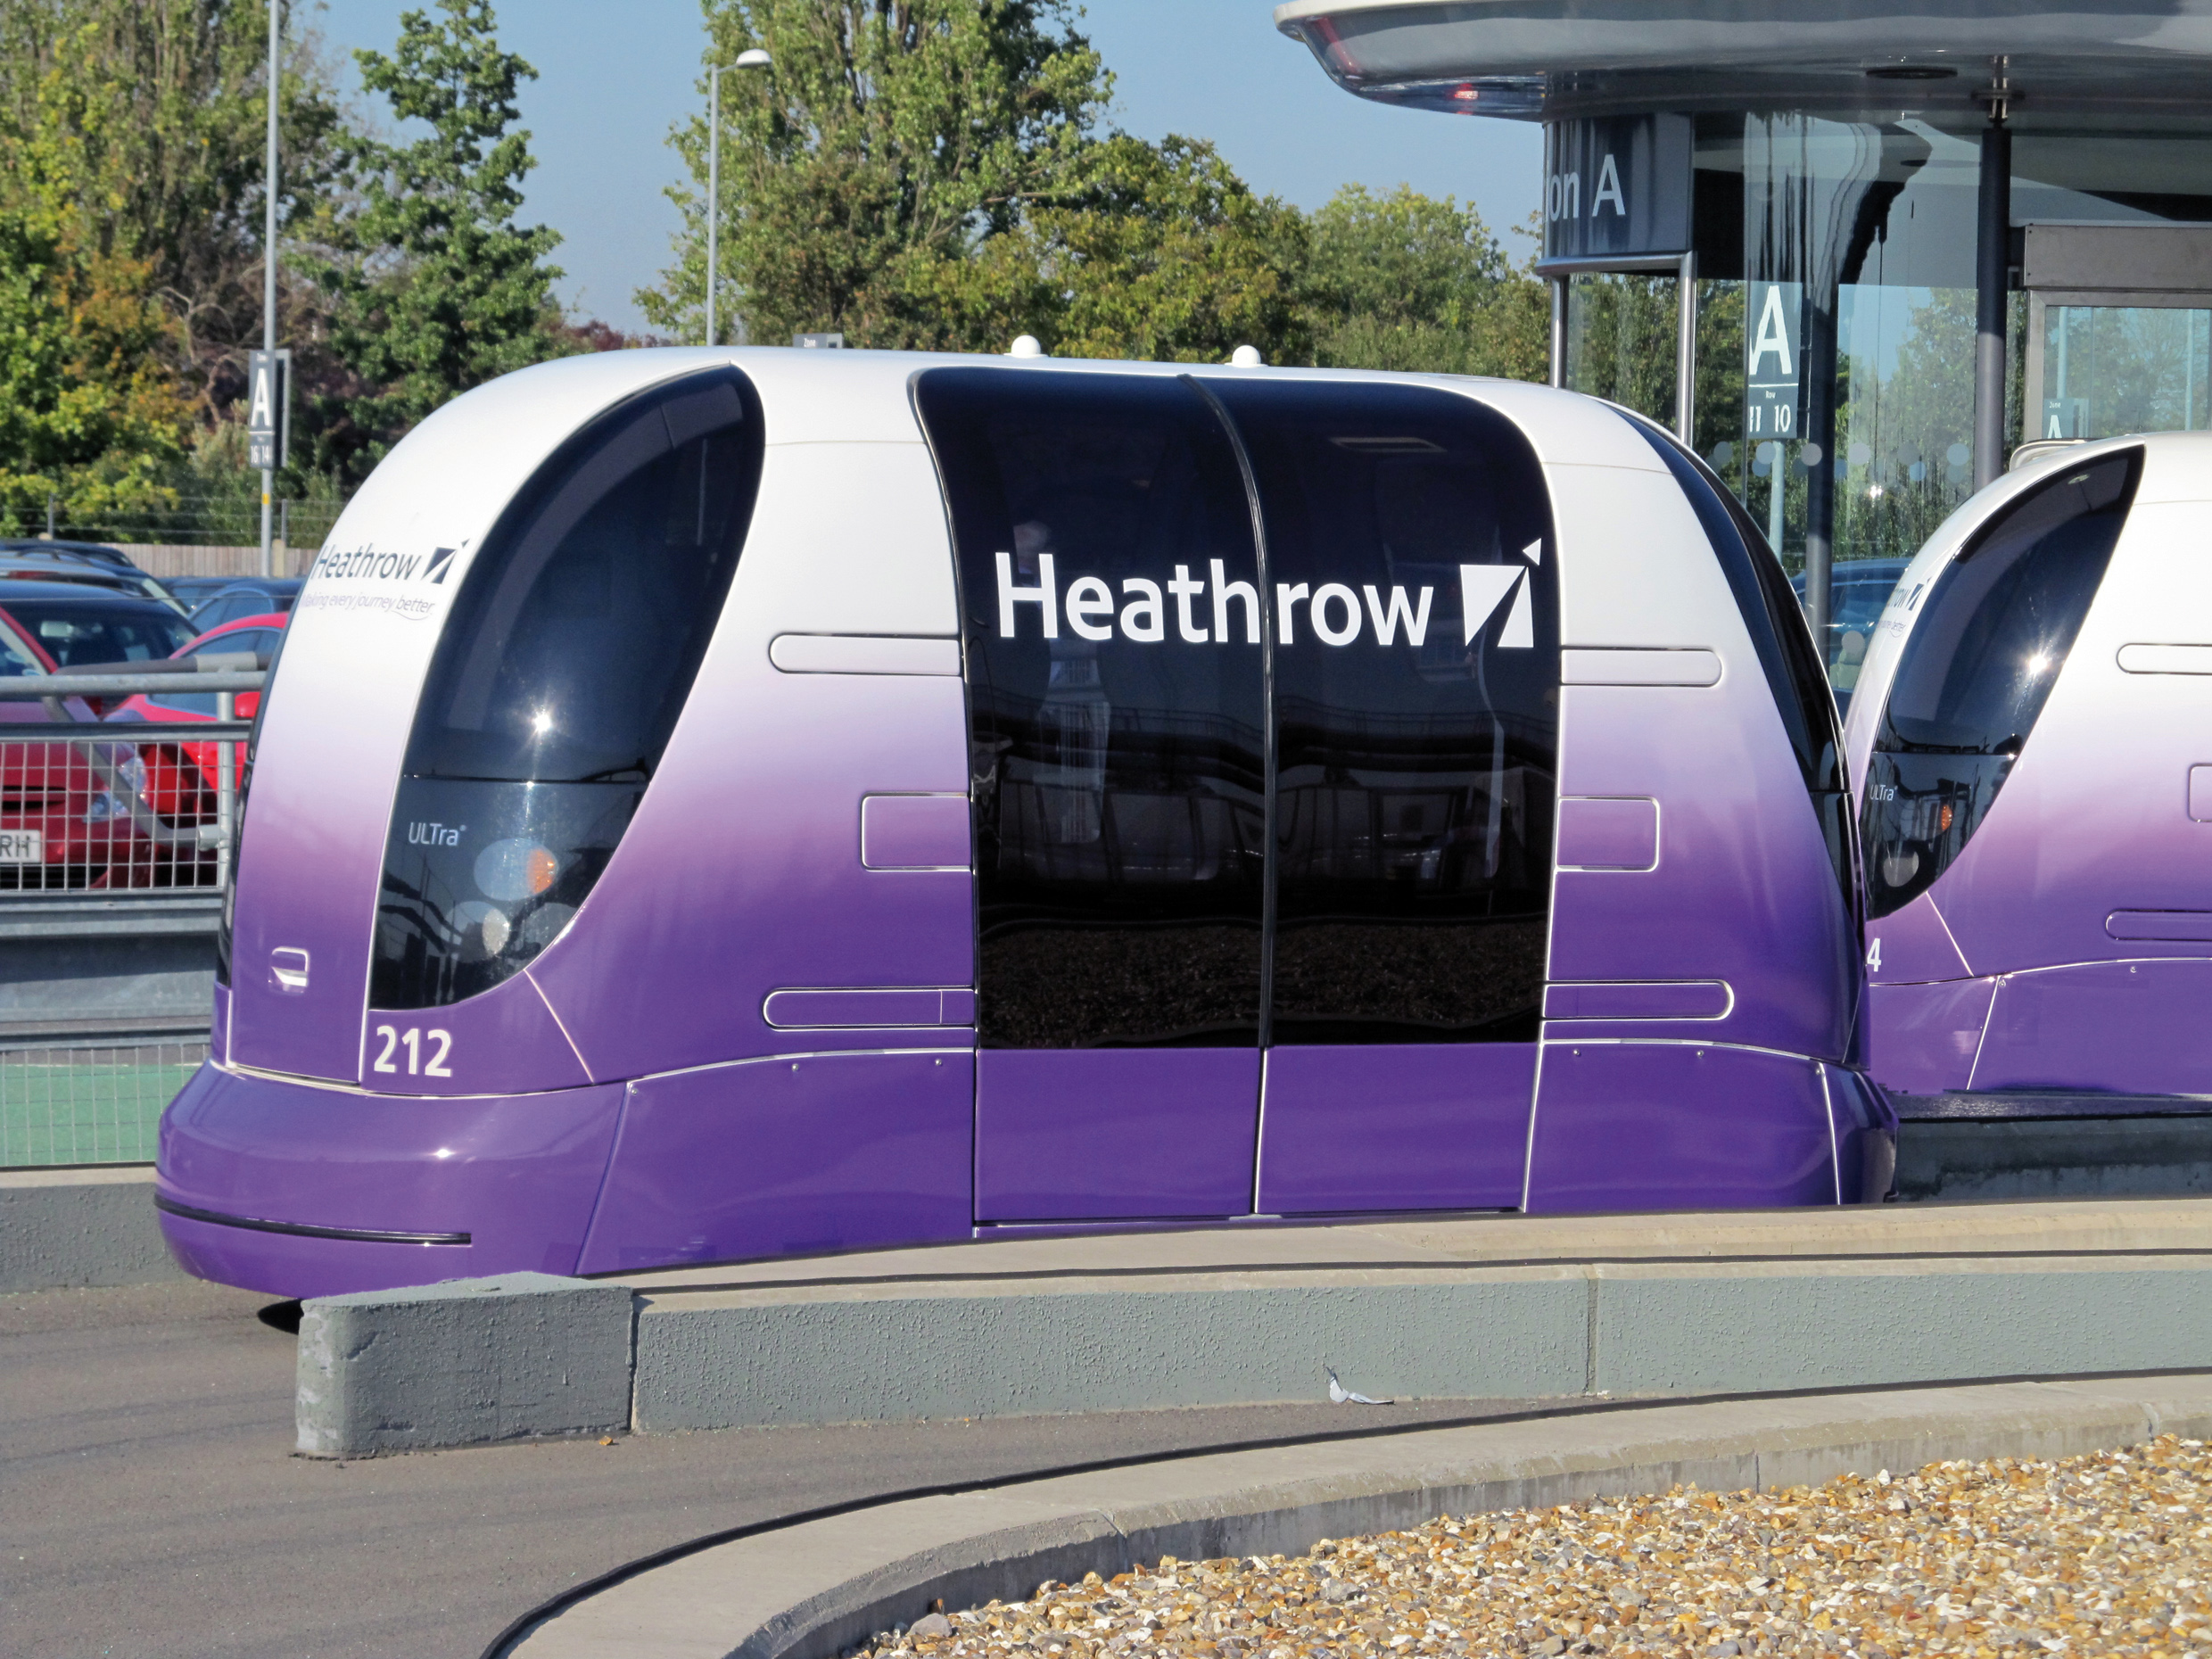 Heathrow_transport_Pods